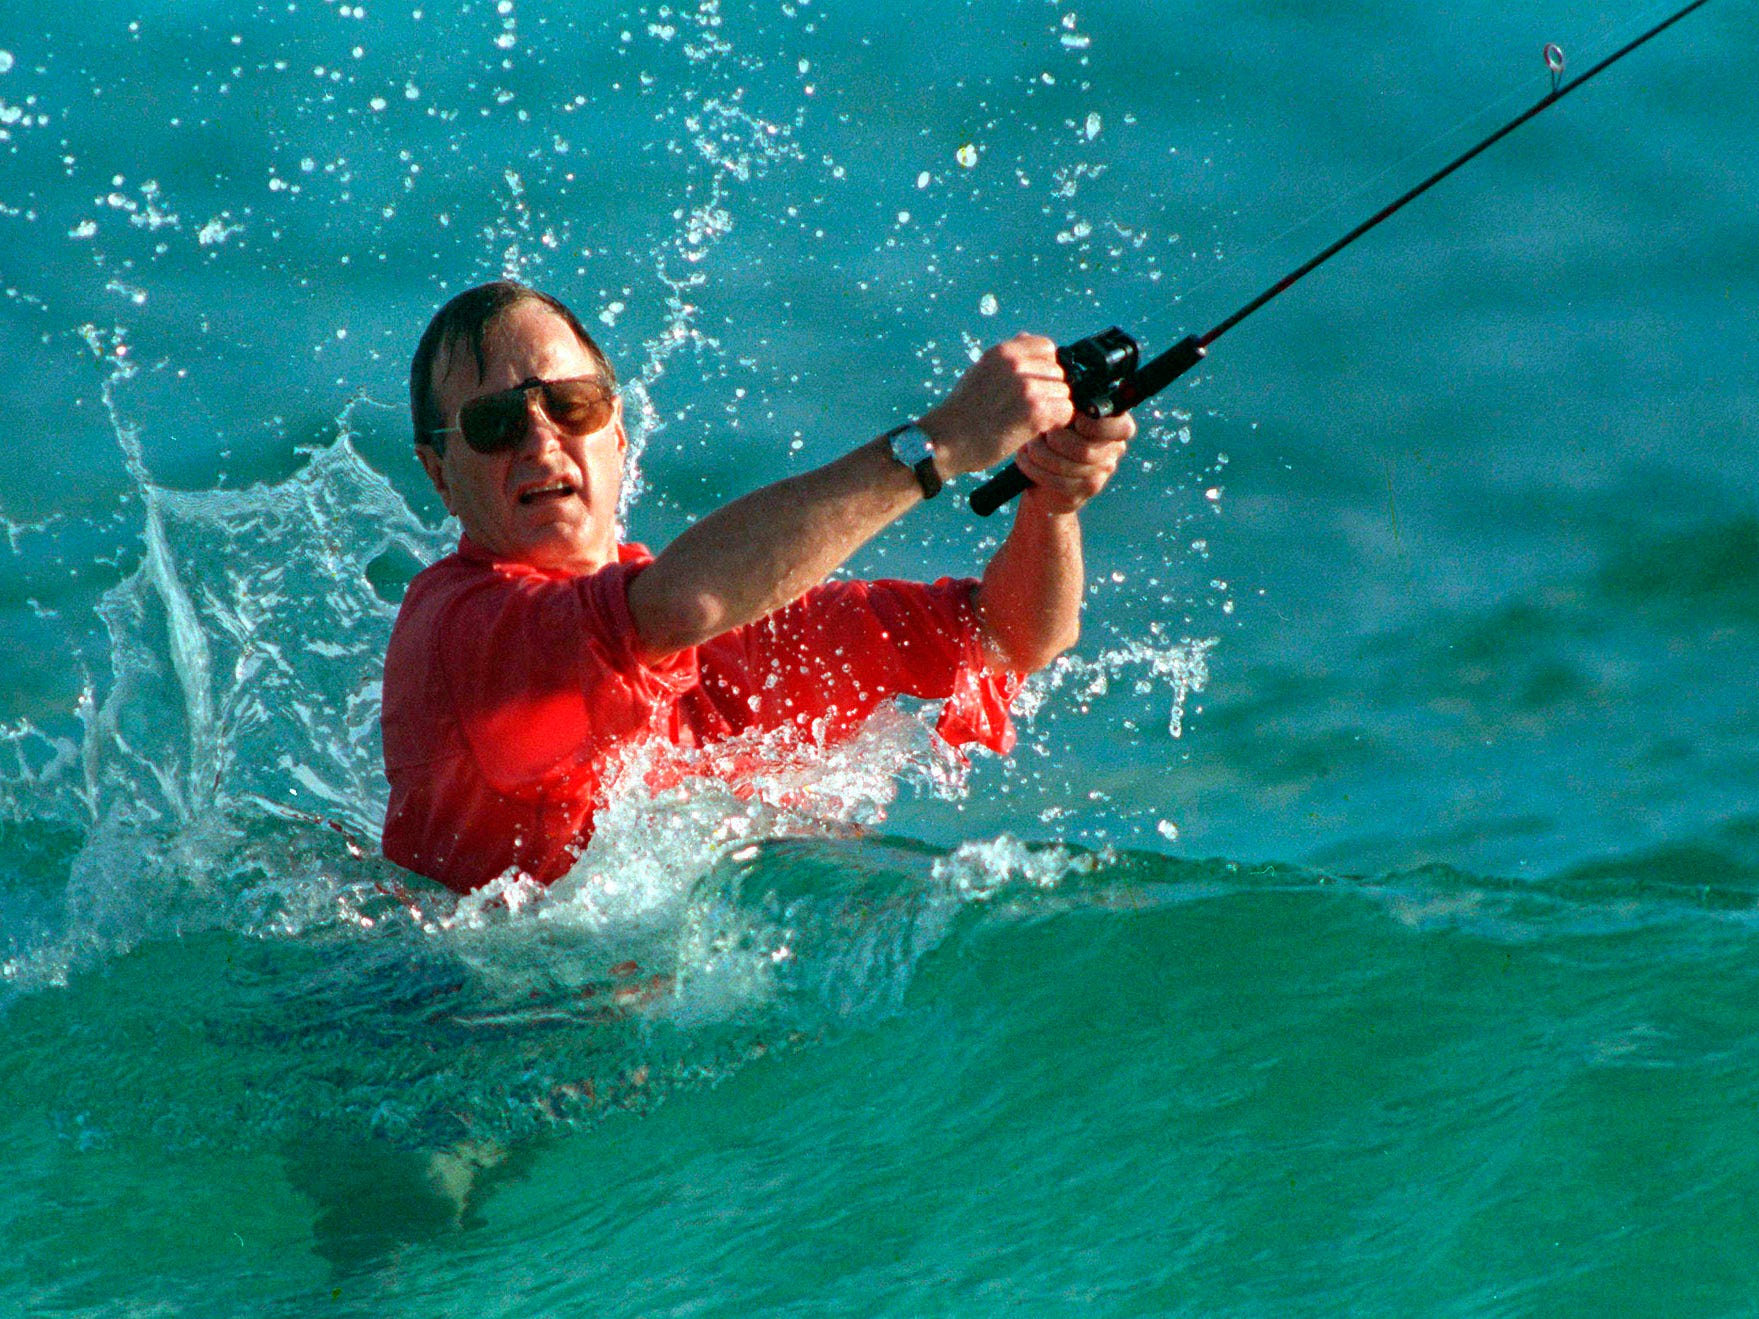 President-elect George H.W. Bush as he casts a line while fishing in Gulf Stream, Fla. on Nov. 12, 1988.